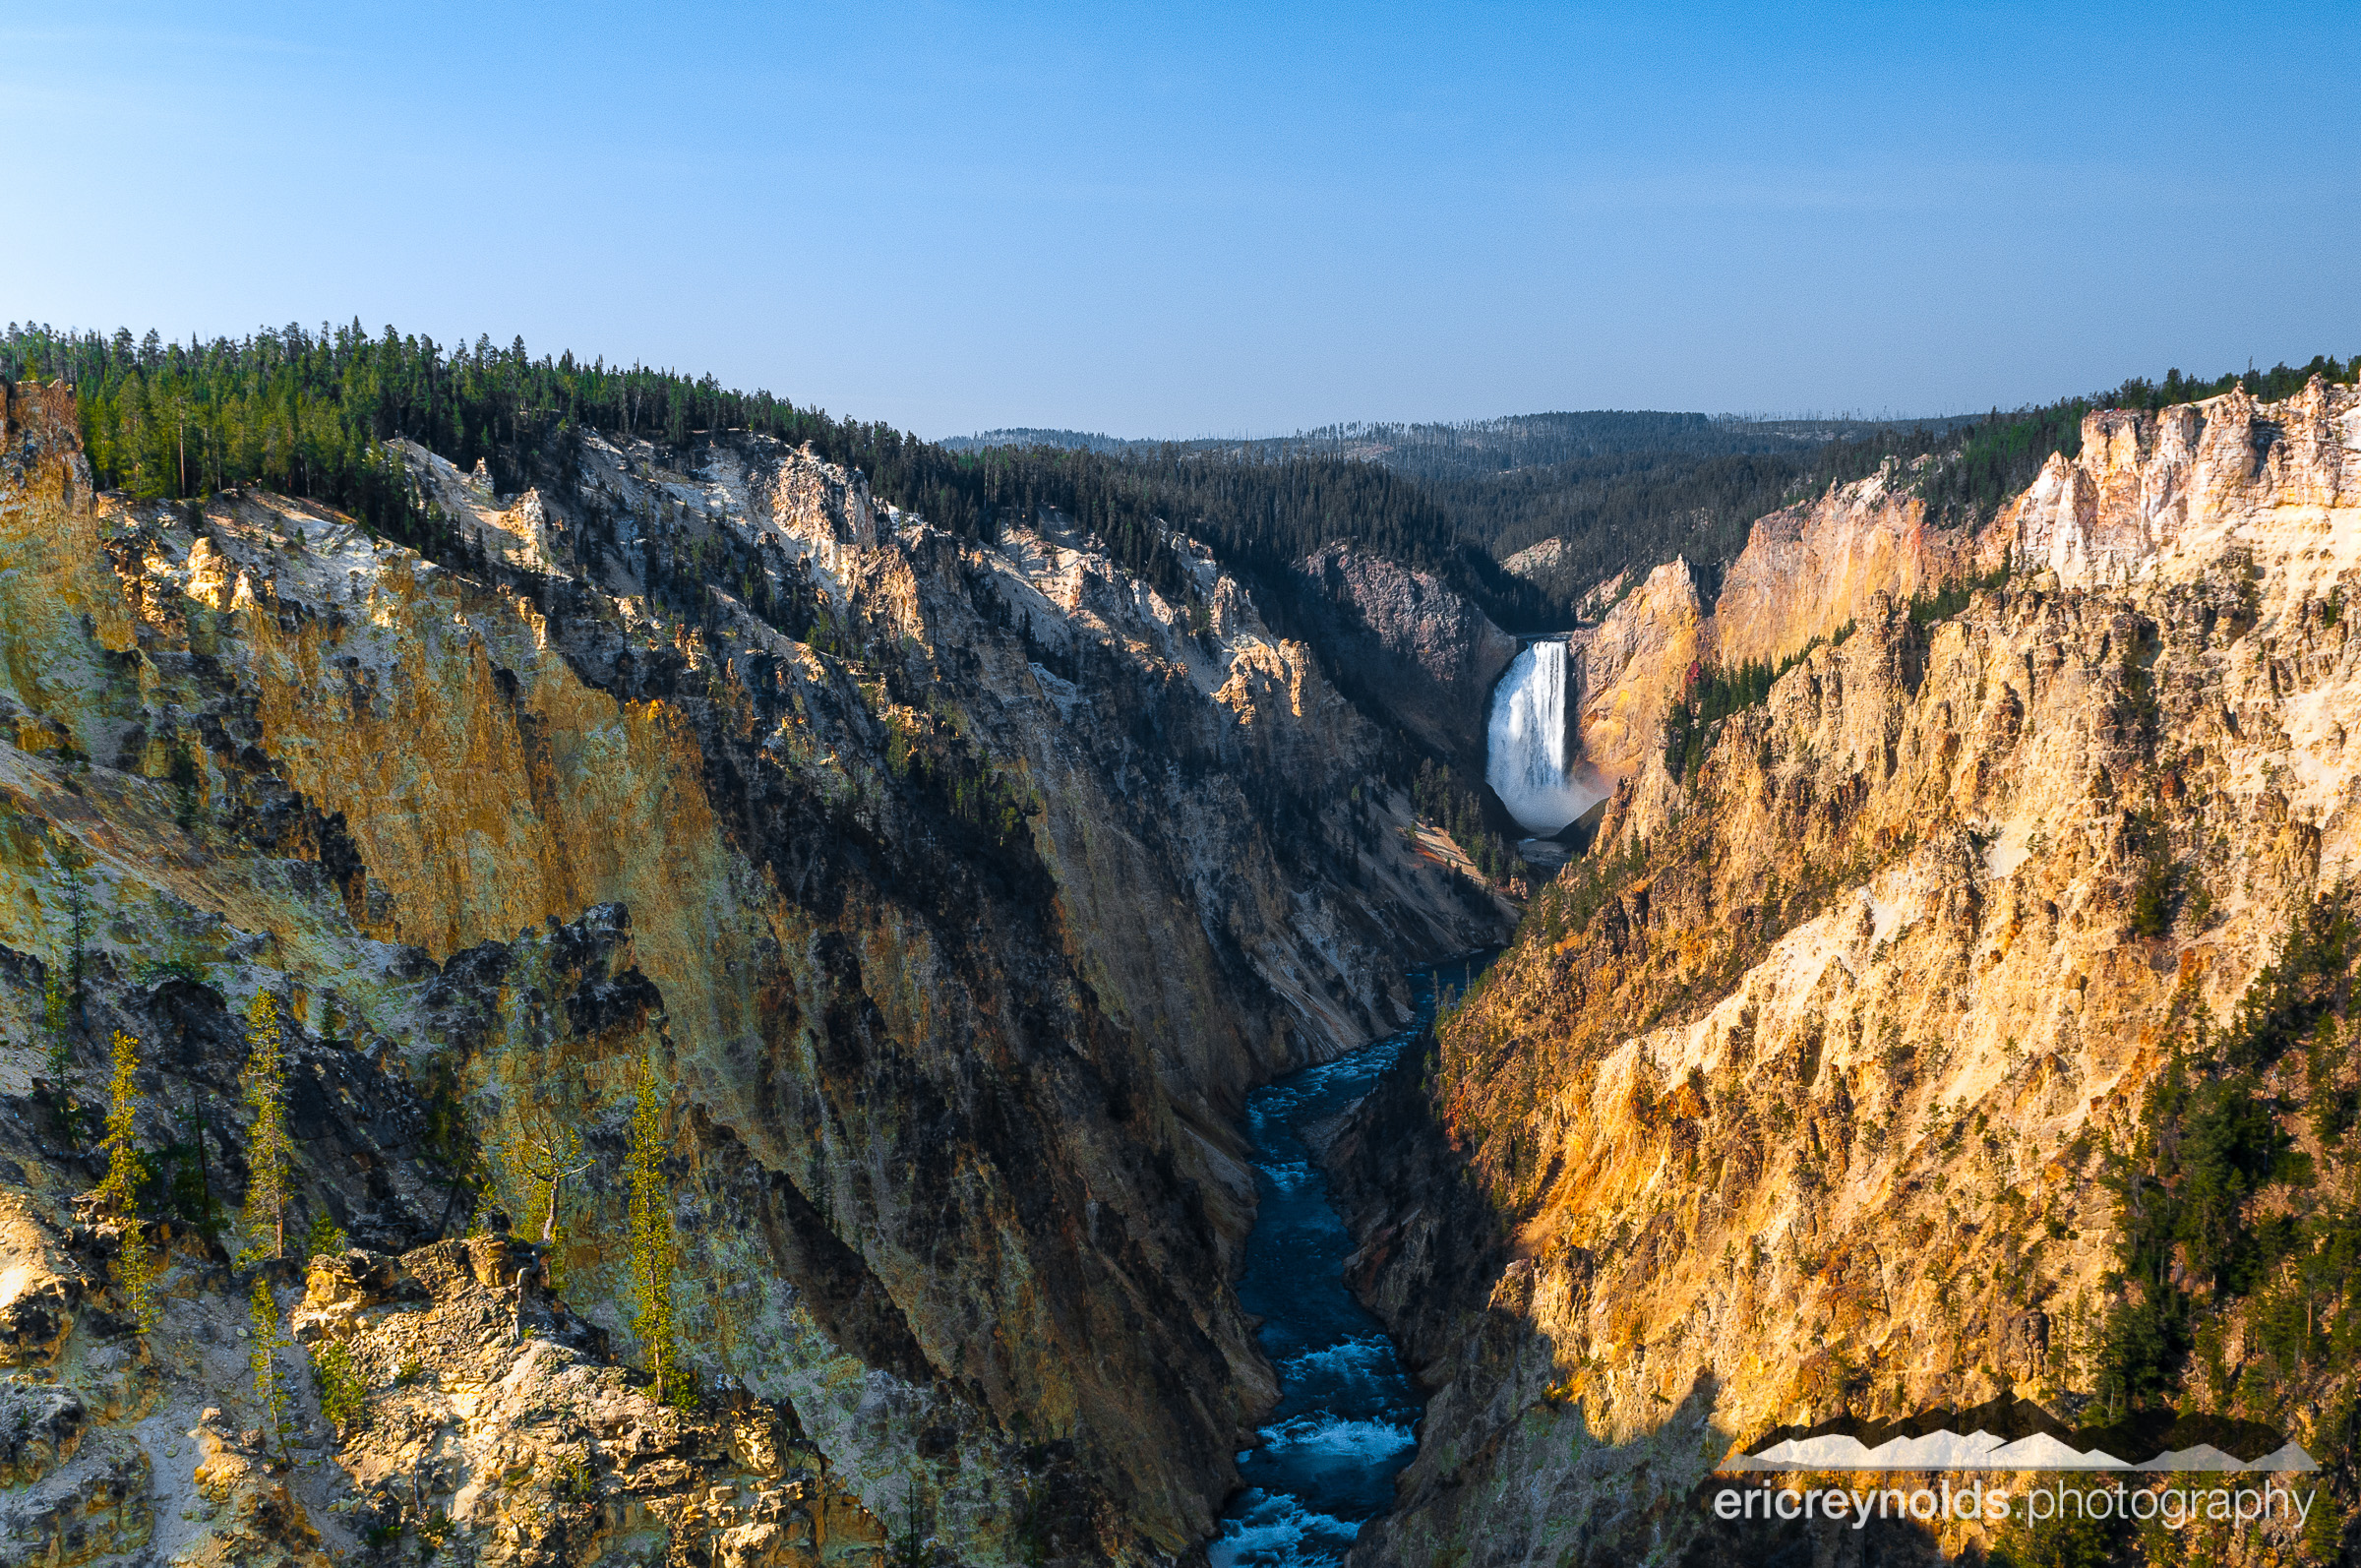 Lower Falls of the Yellowstone by Eric Reynolds - Landscape Photographer